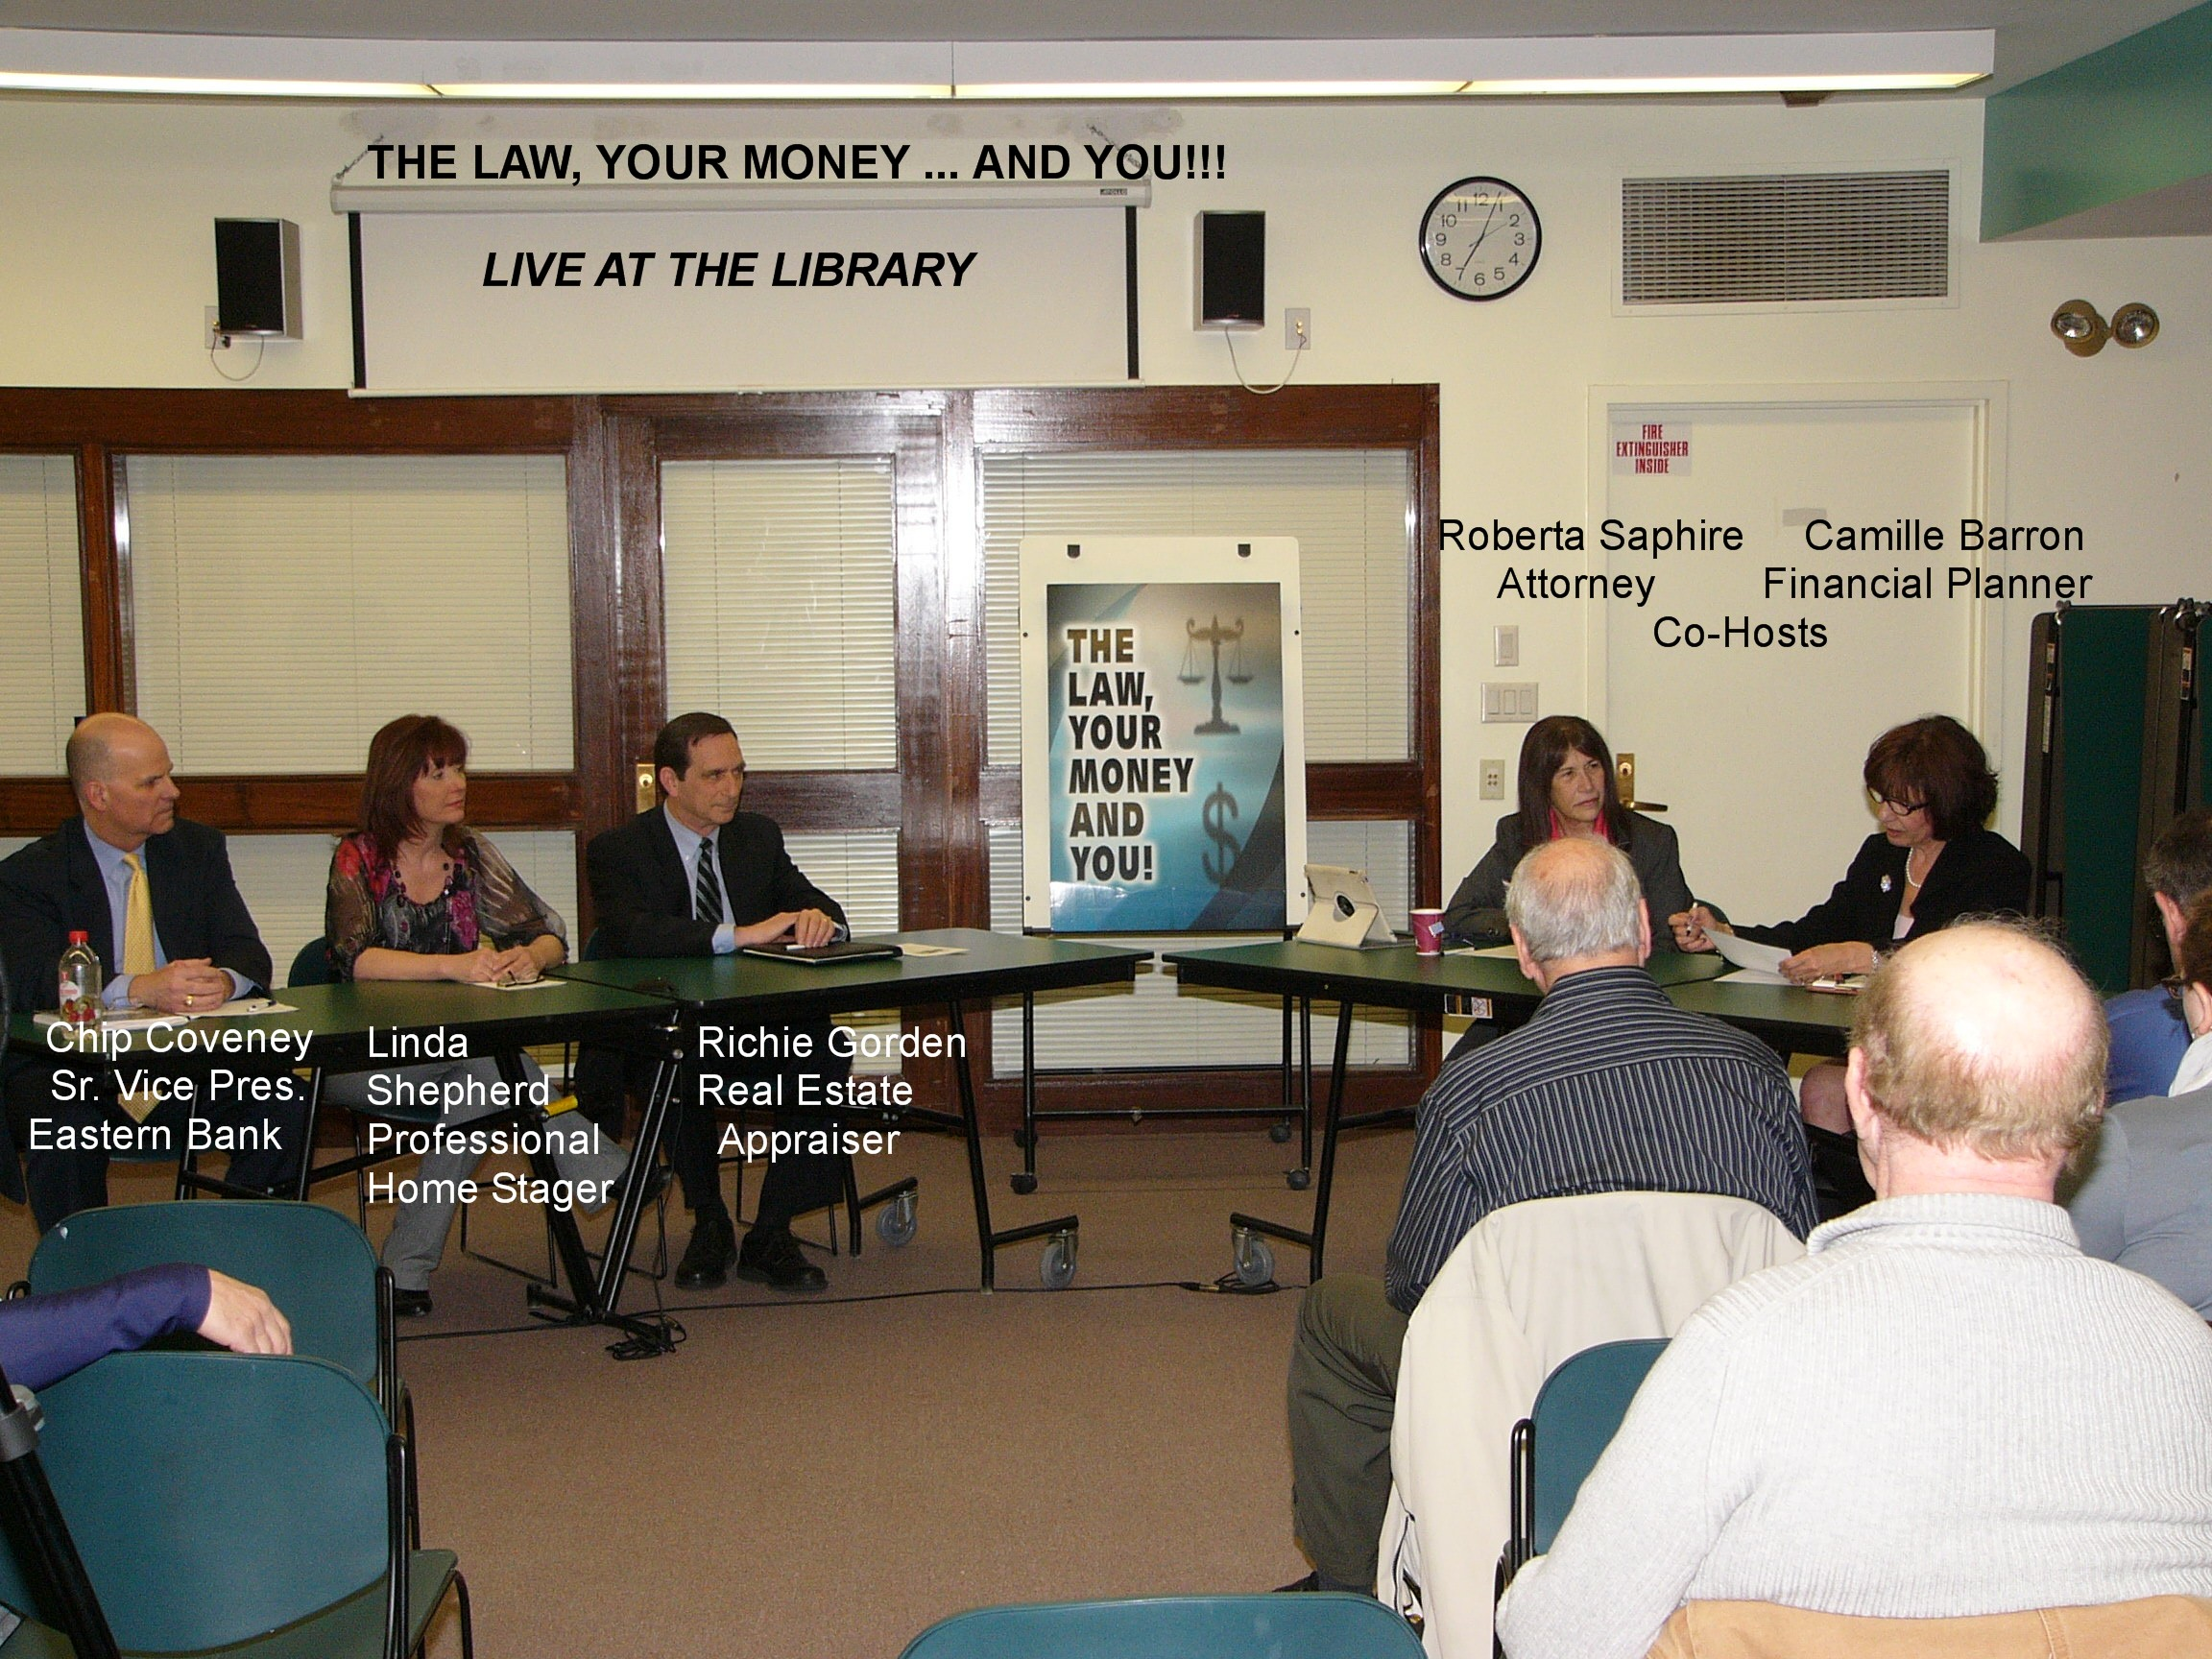 Real Estate Market Live at the Library